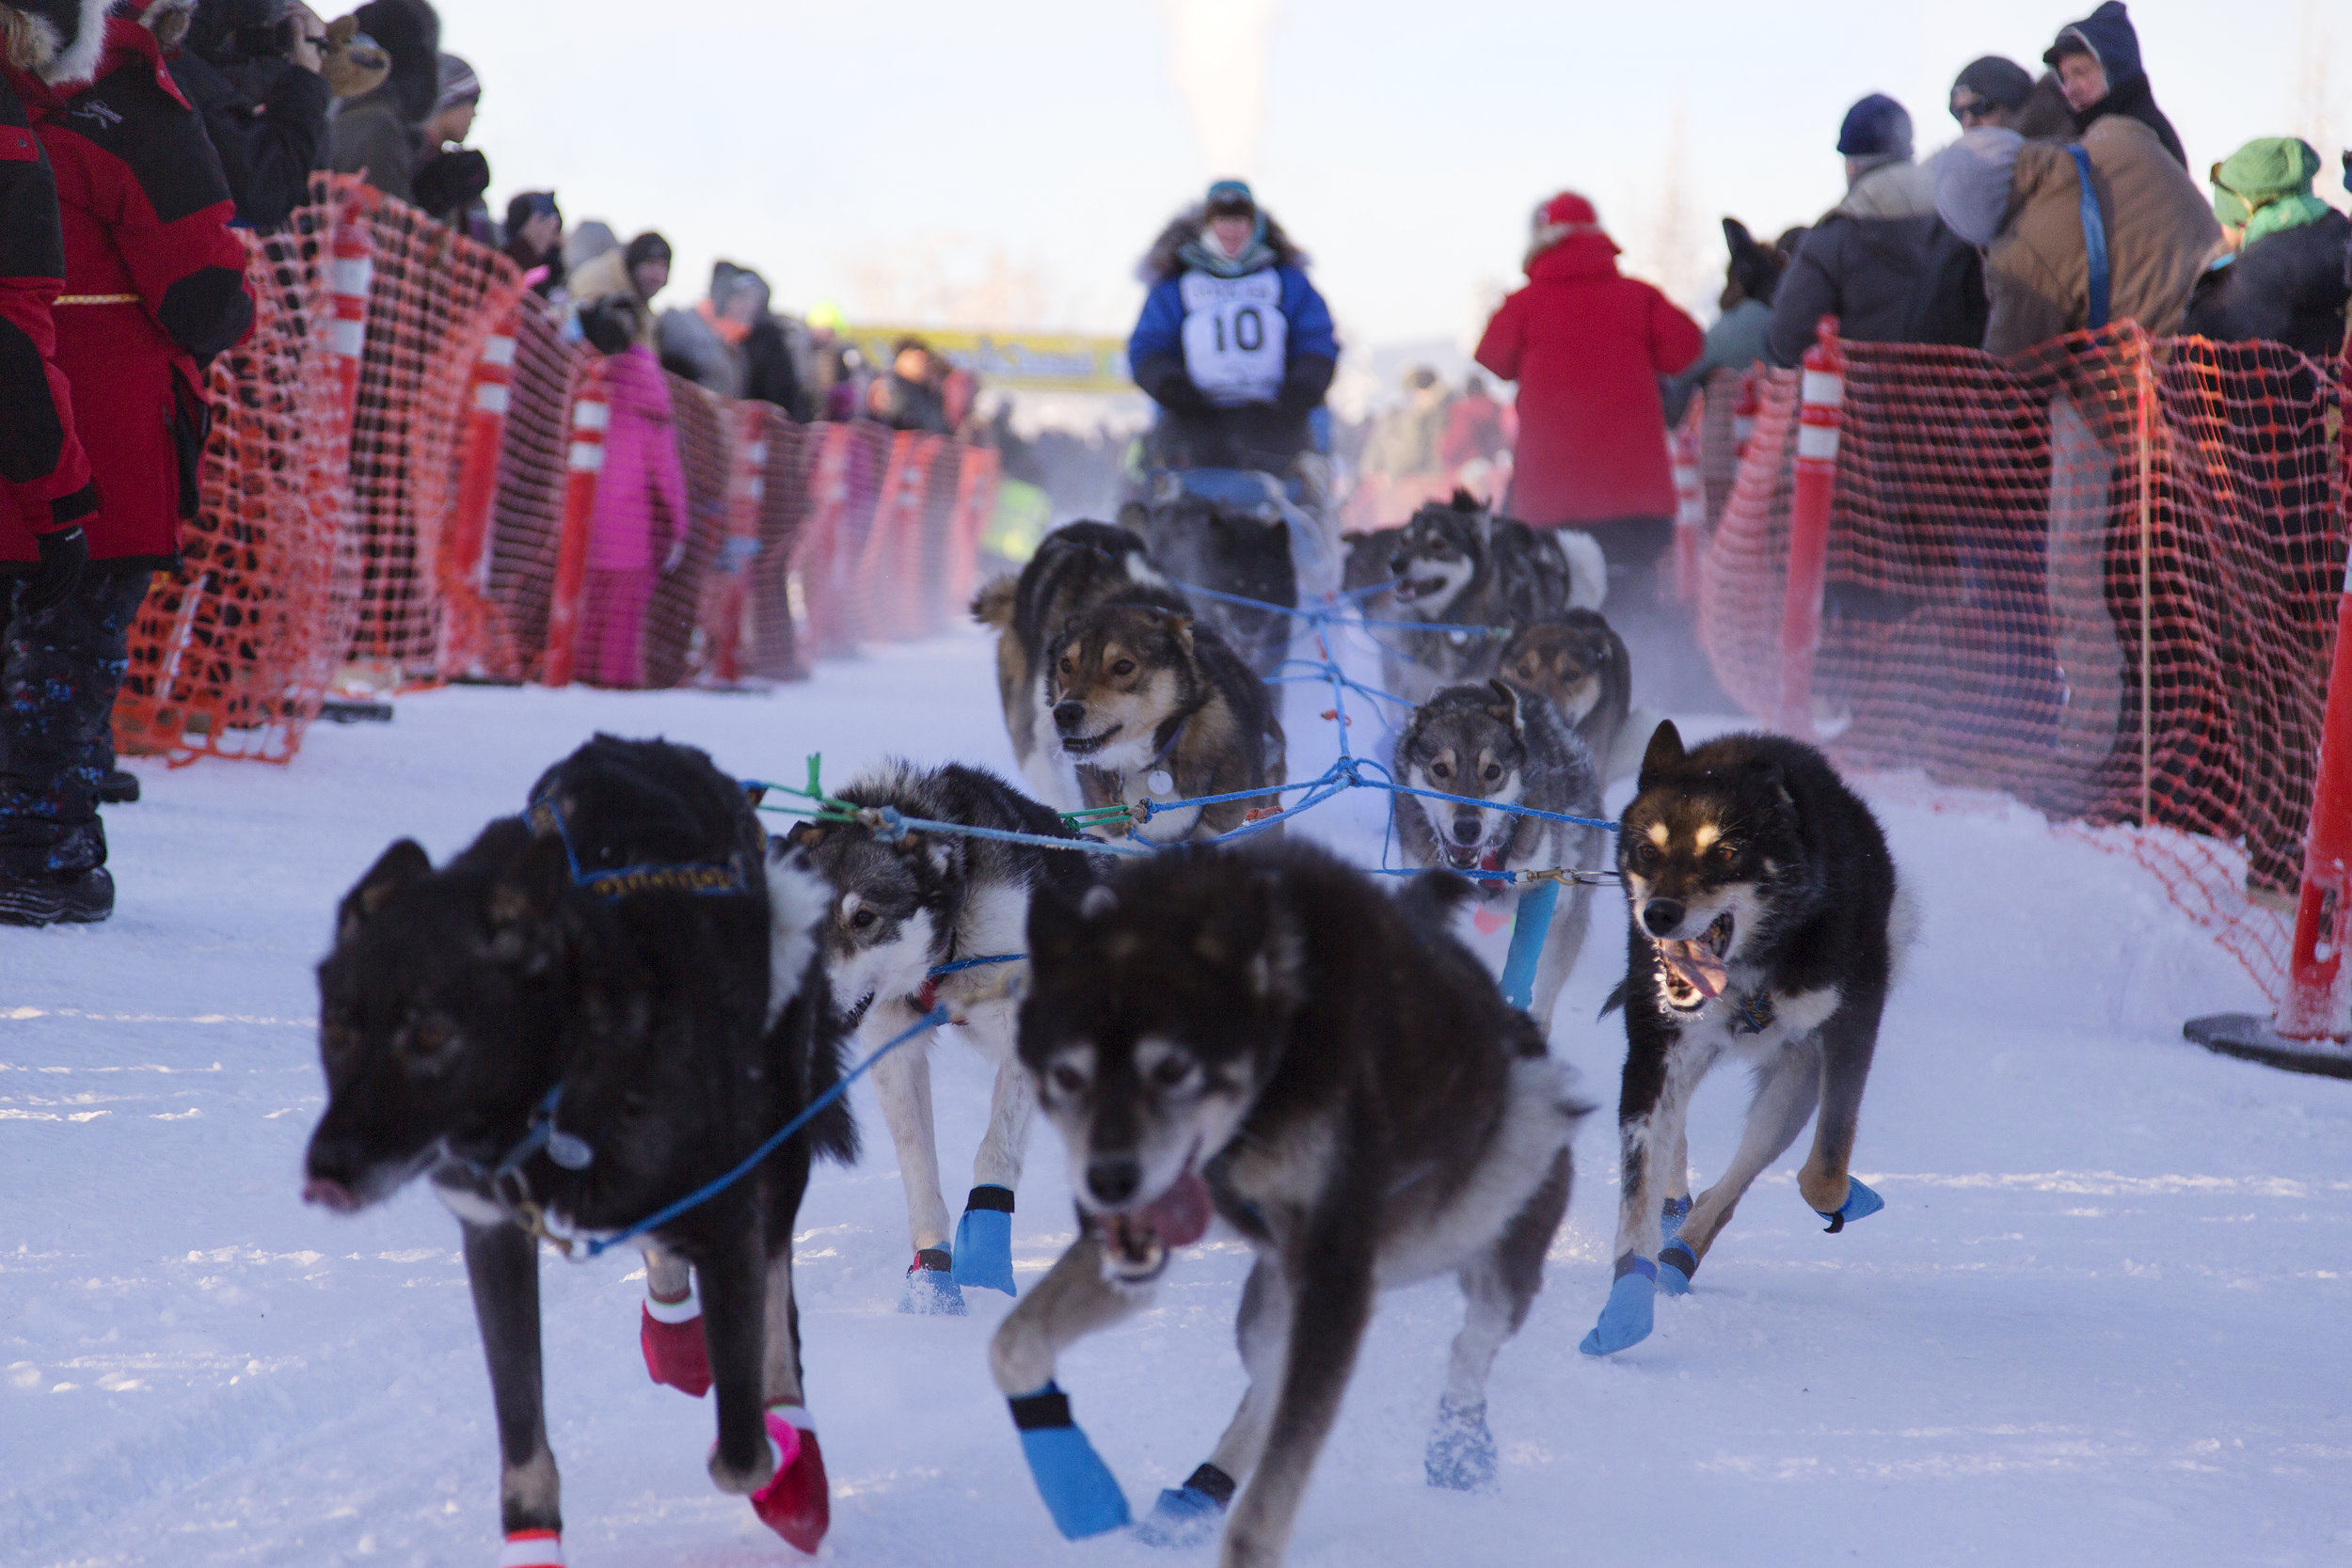 #10 Paige Drobny barrels down the chute on at the start line of the 2018 Yukon Quest in downtown Fairbanks, AK.  Drobny is a 42 year old Yukon Quest veteran. She has been running dogs for 12 years. Her kennel name is Squid Acres Kennel because she studied squid for her Master's degree. Last year in 2017, she came in 4th place overall in the Quest. (c) Sarah Manriquez 2018